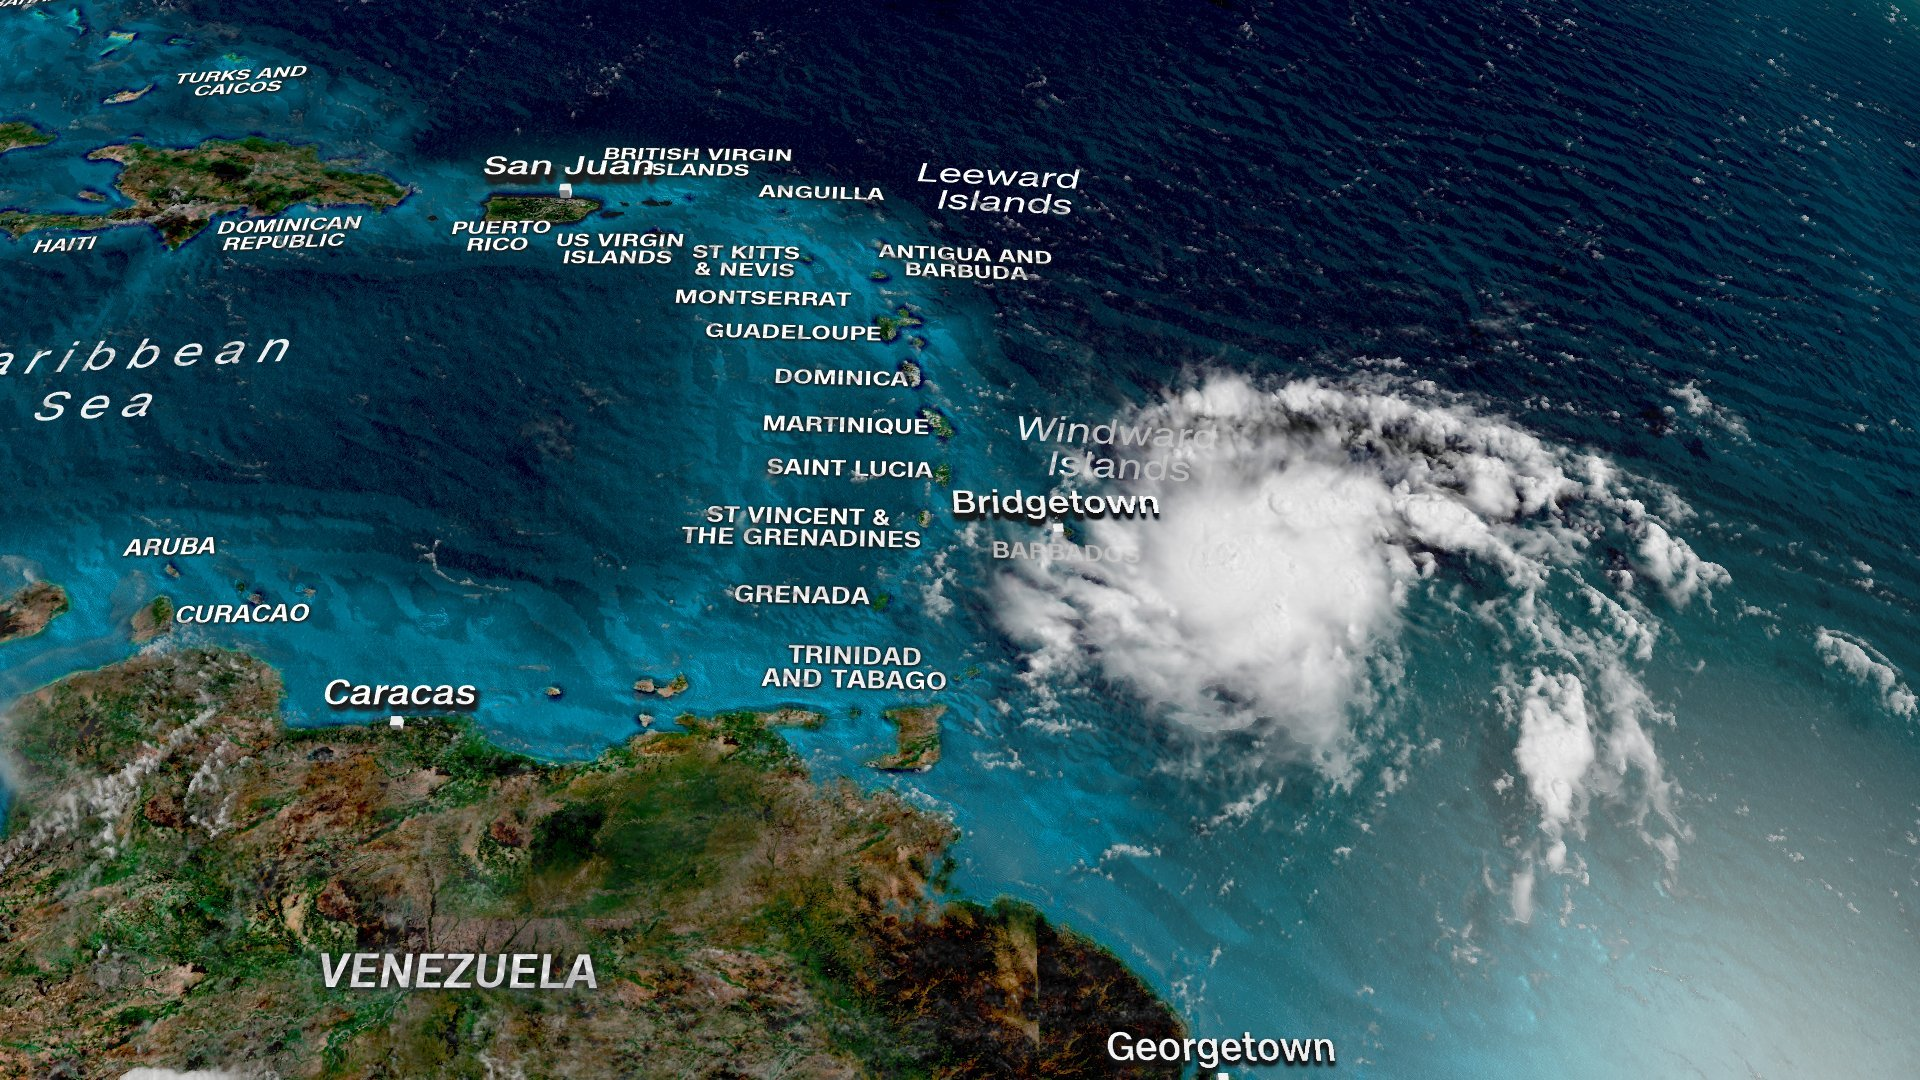 The National Hurricane Center issued a tropical storm warning and a hurricane watch for Puerto Rico on Tuesday morning as Tropical Storm Dorian continues to move across the Caribbean toward the island. (Credit: CNN)